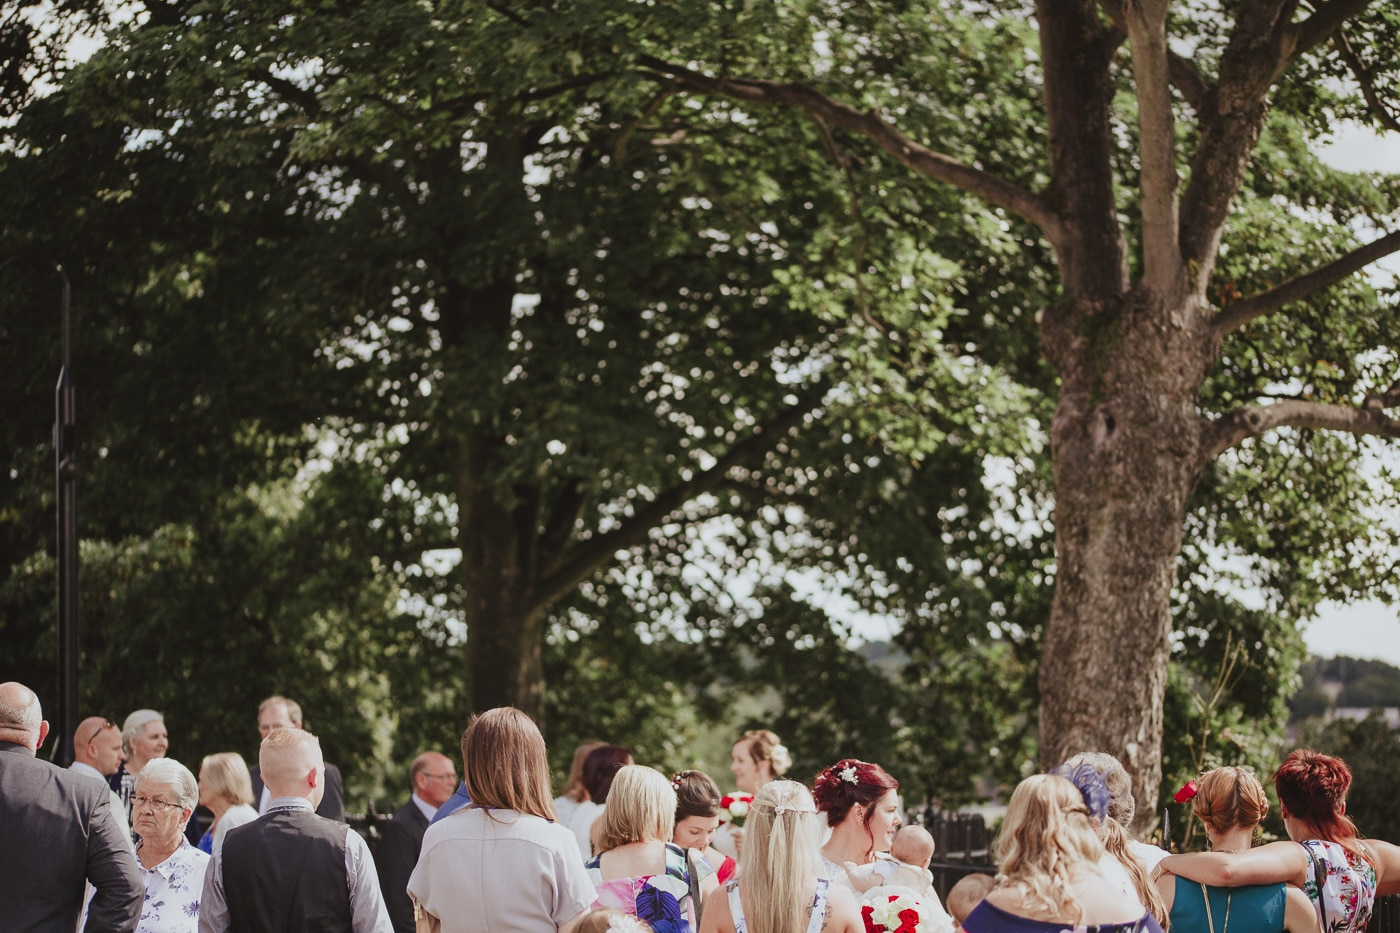 Guests surrounded by trees for wedding by Joshua Wyborn photography